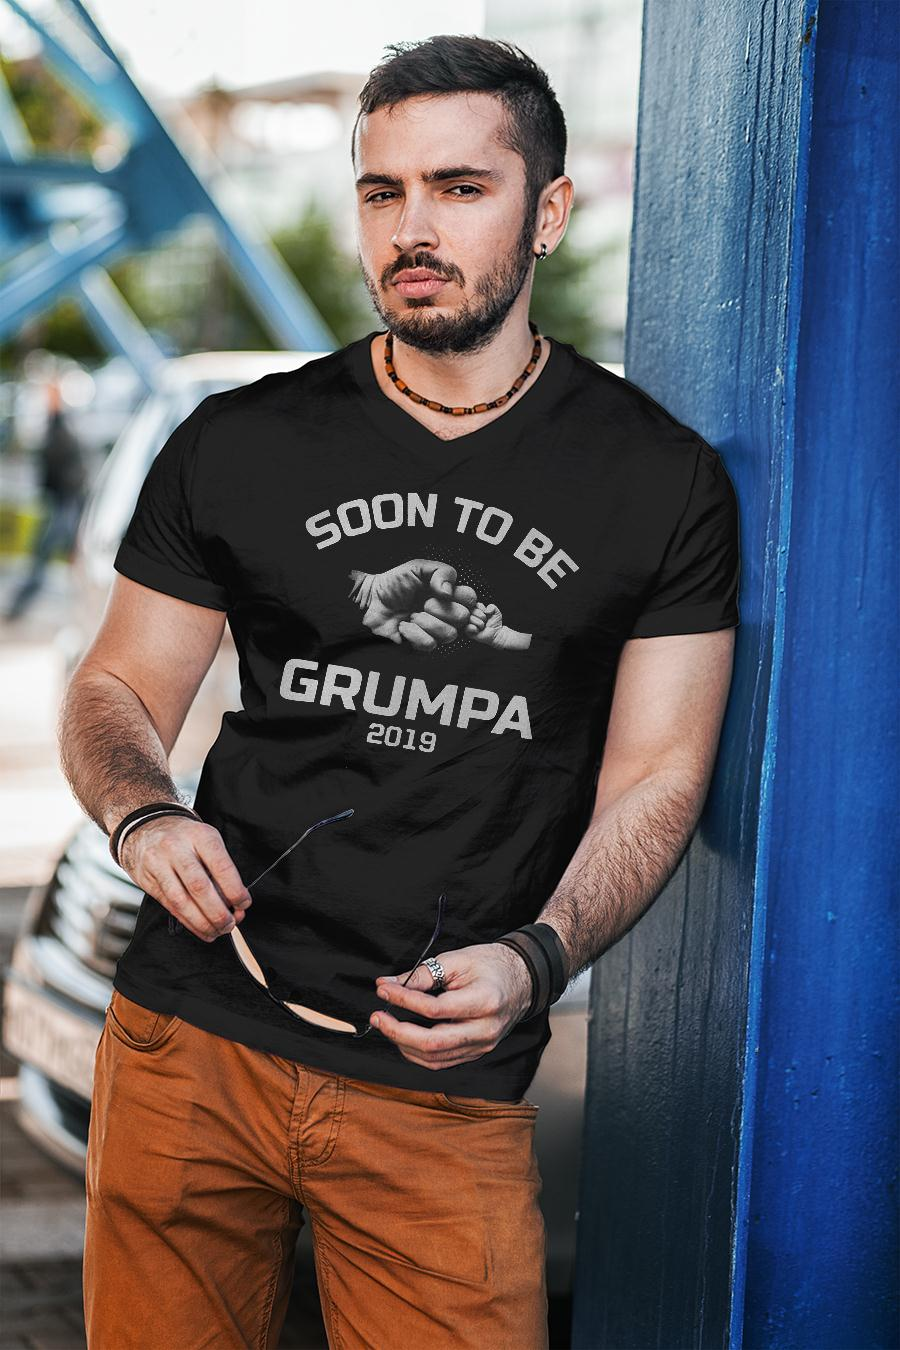 Promoted New Grumpa Soon To Be Est 2019 Gift Shirt unisex